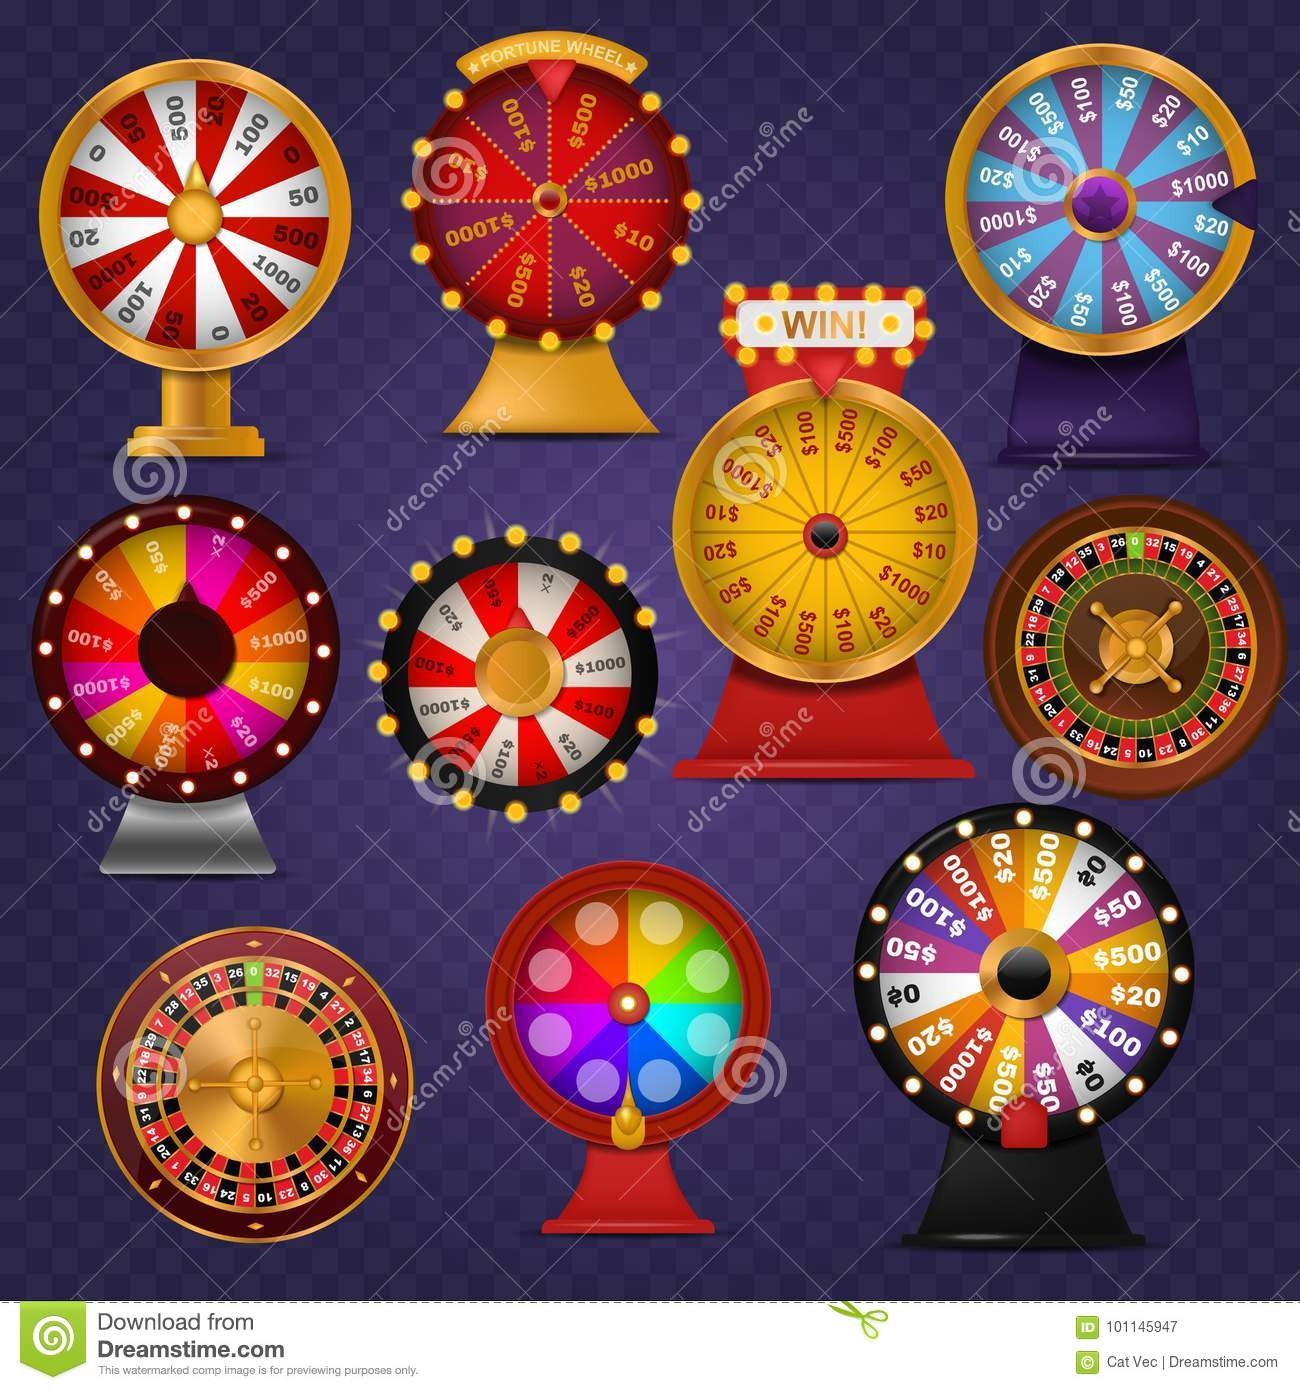 Spinning fortune wheel lucky roulette casino gamble lottery play winner chance spin slot machine vector illustration.